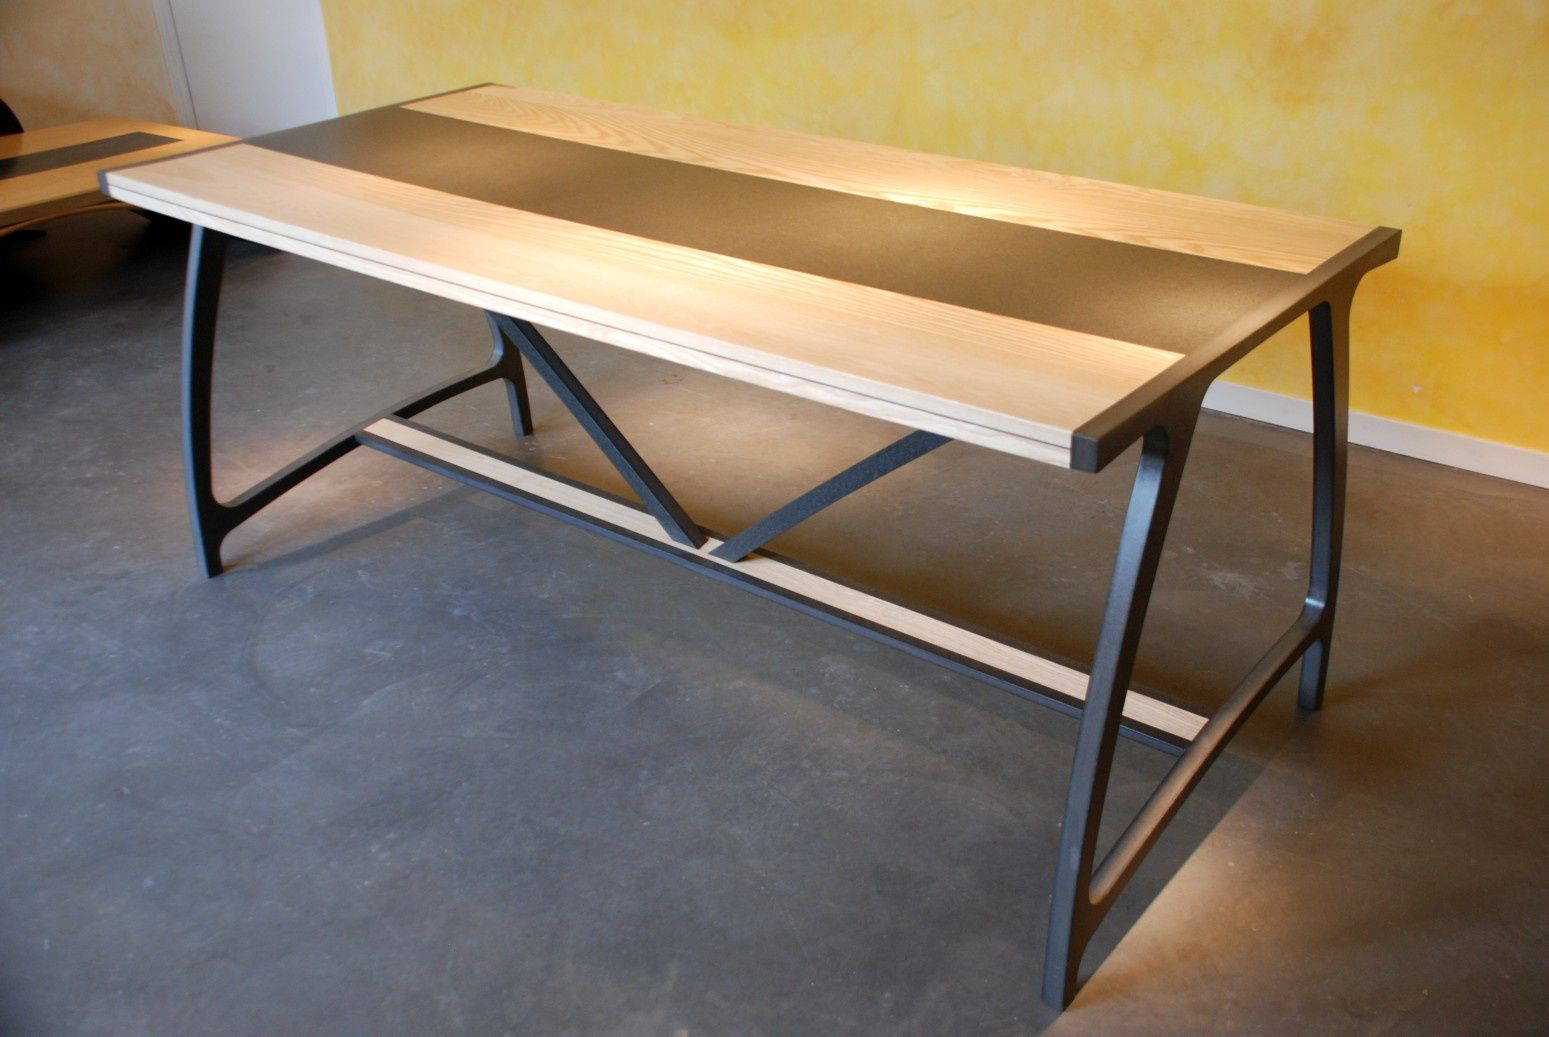 Table salle manger teck design for Salle a manger table en teck